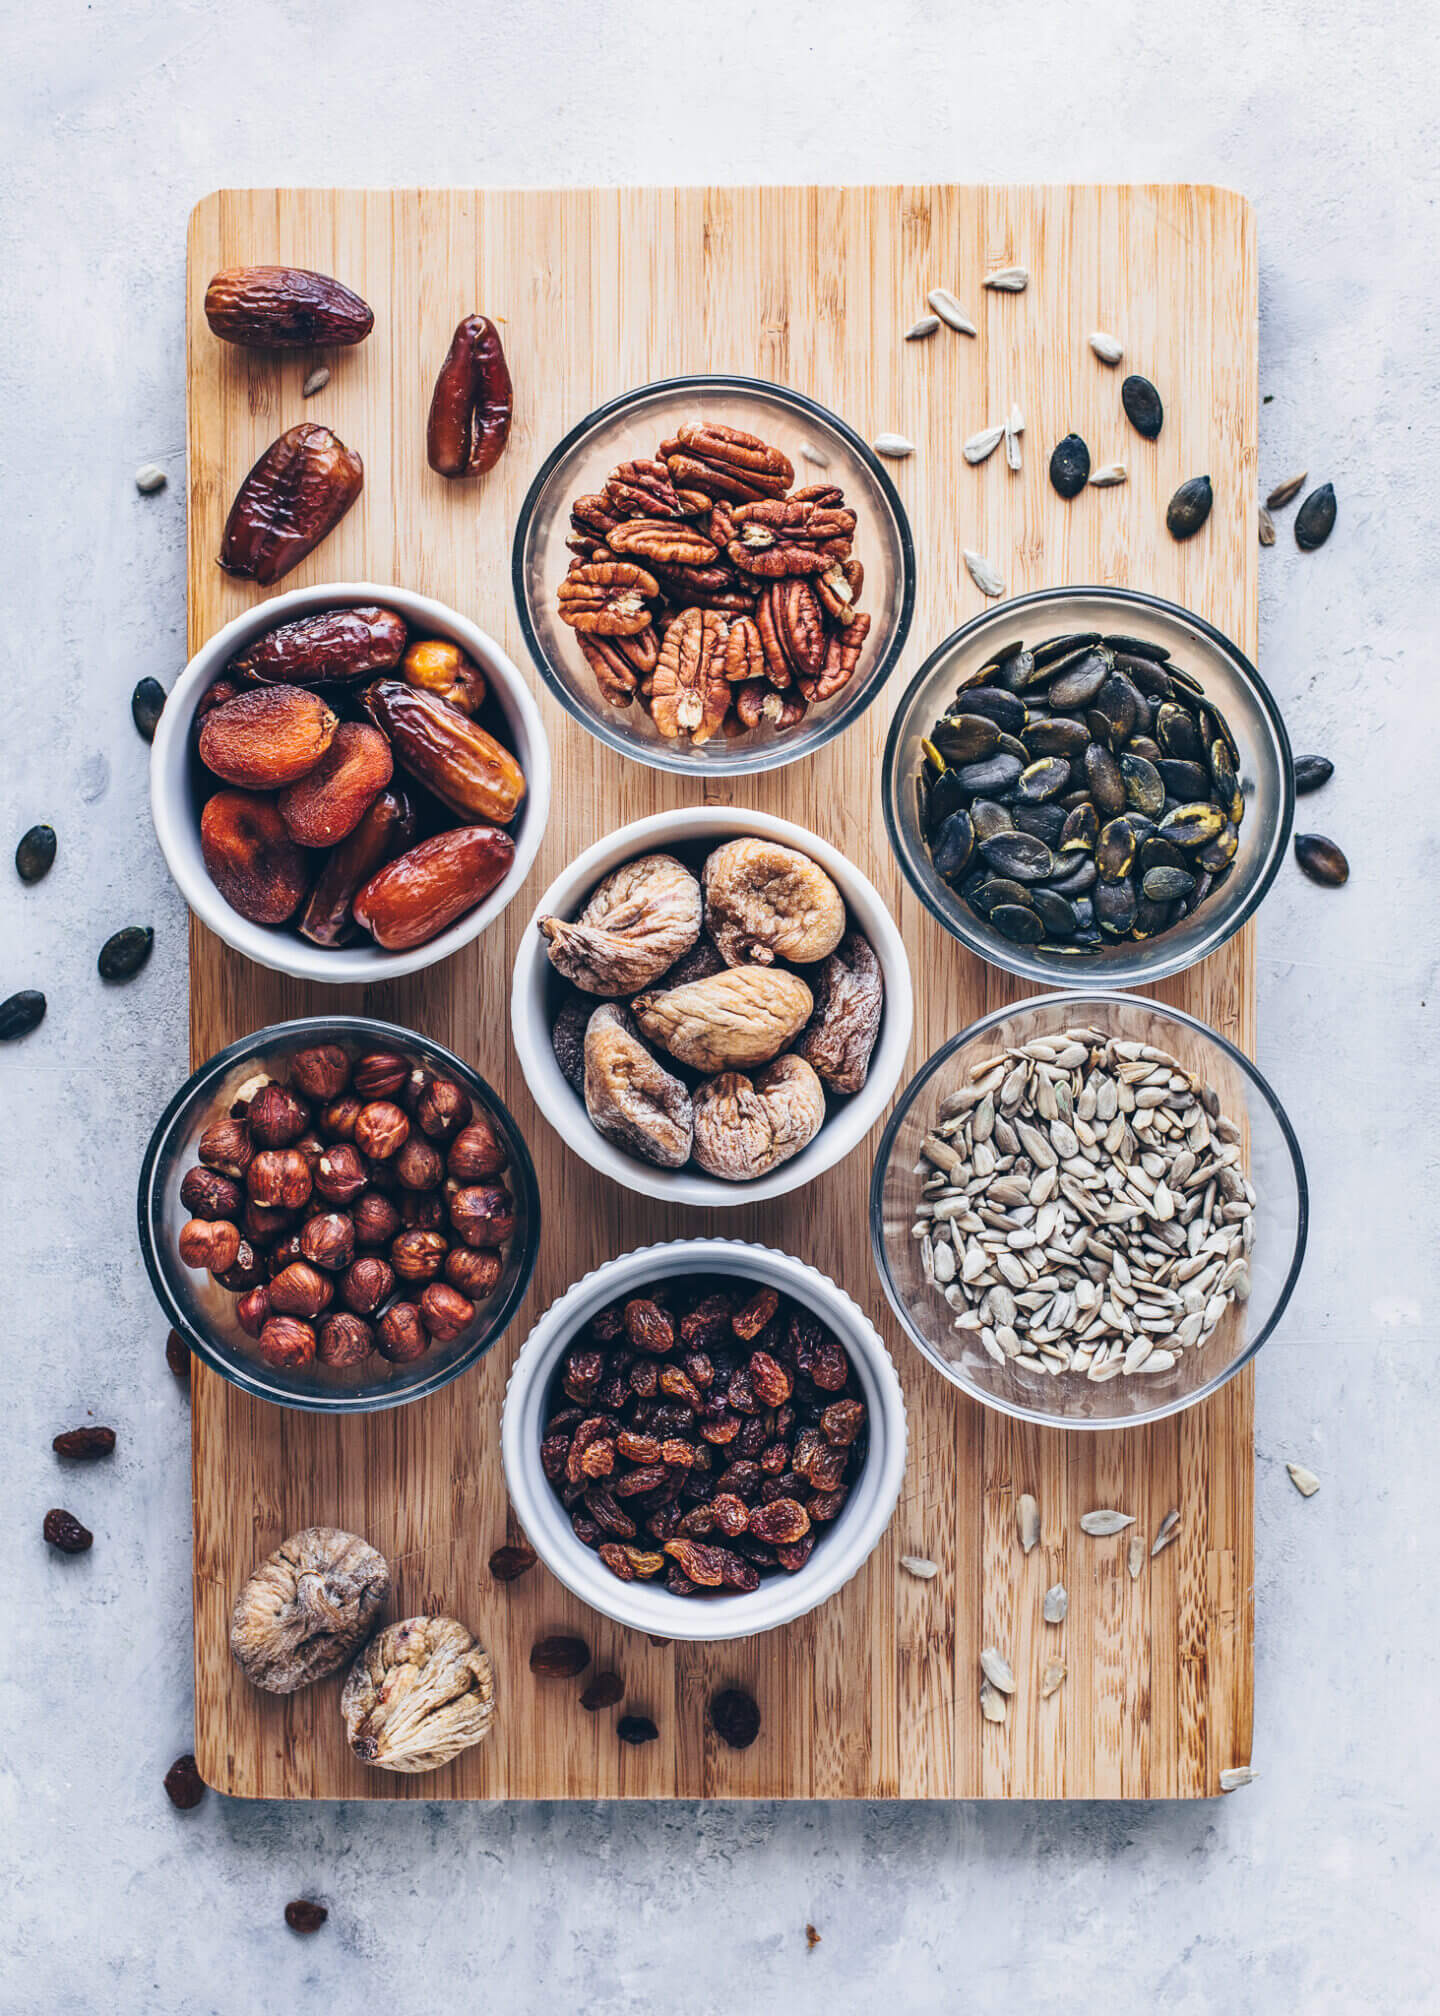 Hazelnuts, dates, apricots, pecans, figs, pepitas, sunflower seeds